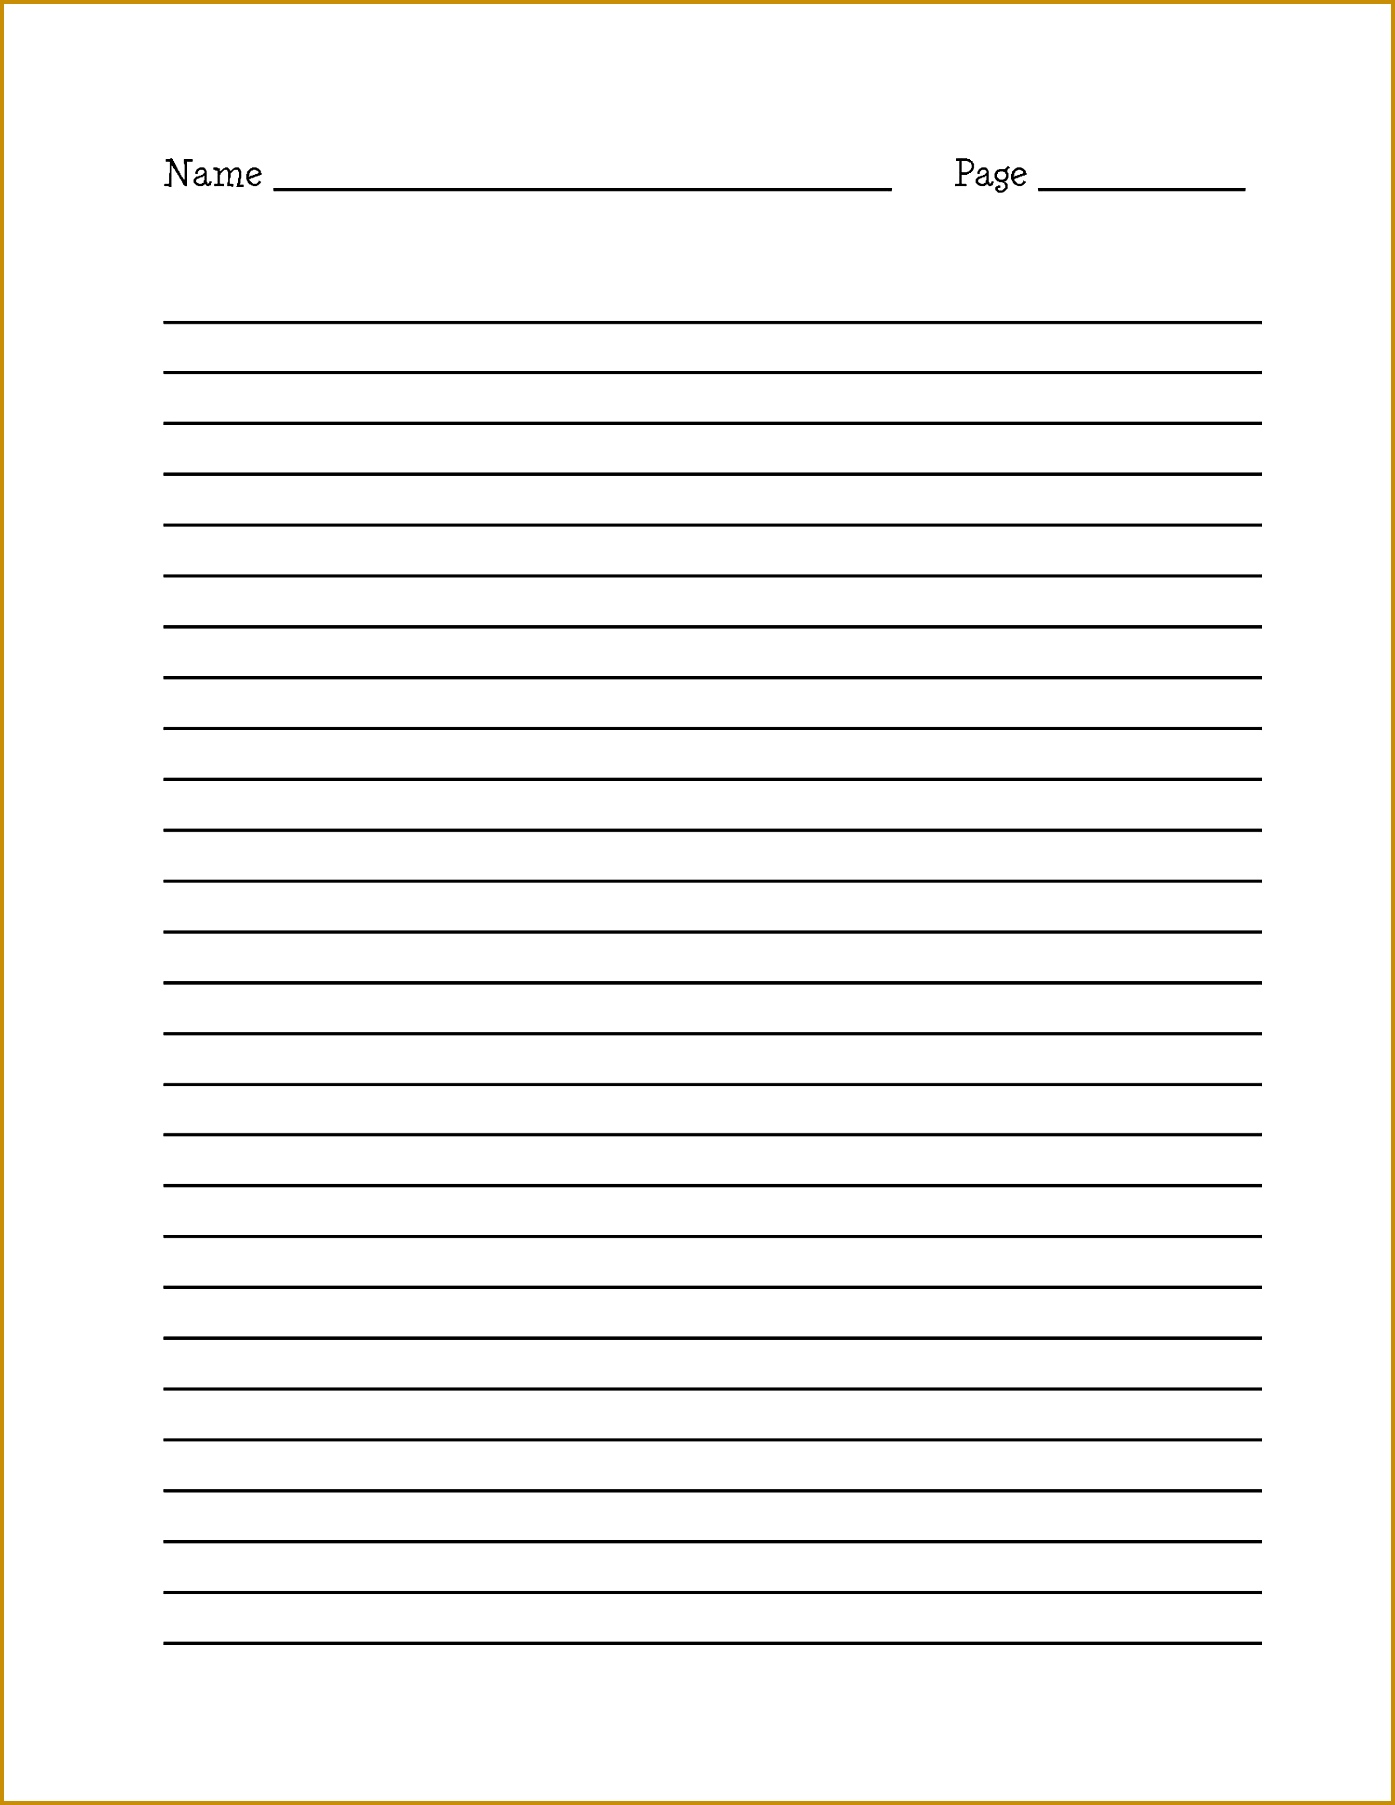 7 Lined Notebook Paper Template Word FabTemplatez FabTemplatez Lined  Notebook Paper Template Word 09069 Lined Paper For Writing For Cute Writing  Paper Dear ...  Notepad Template Word